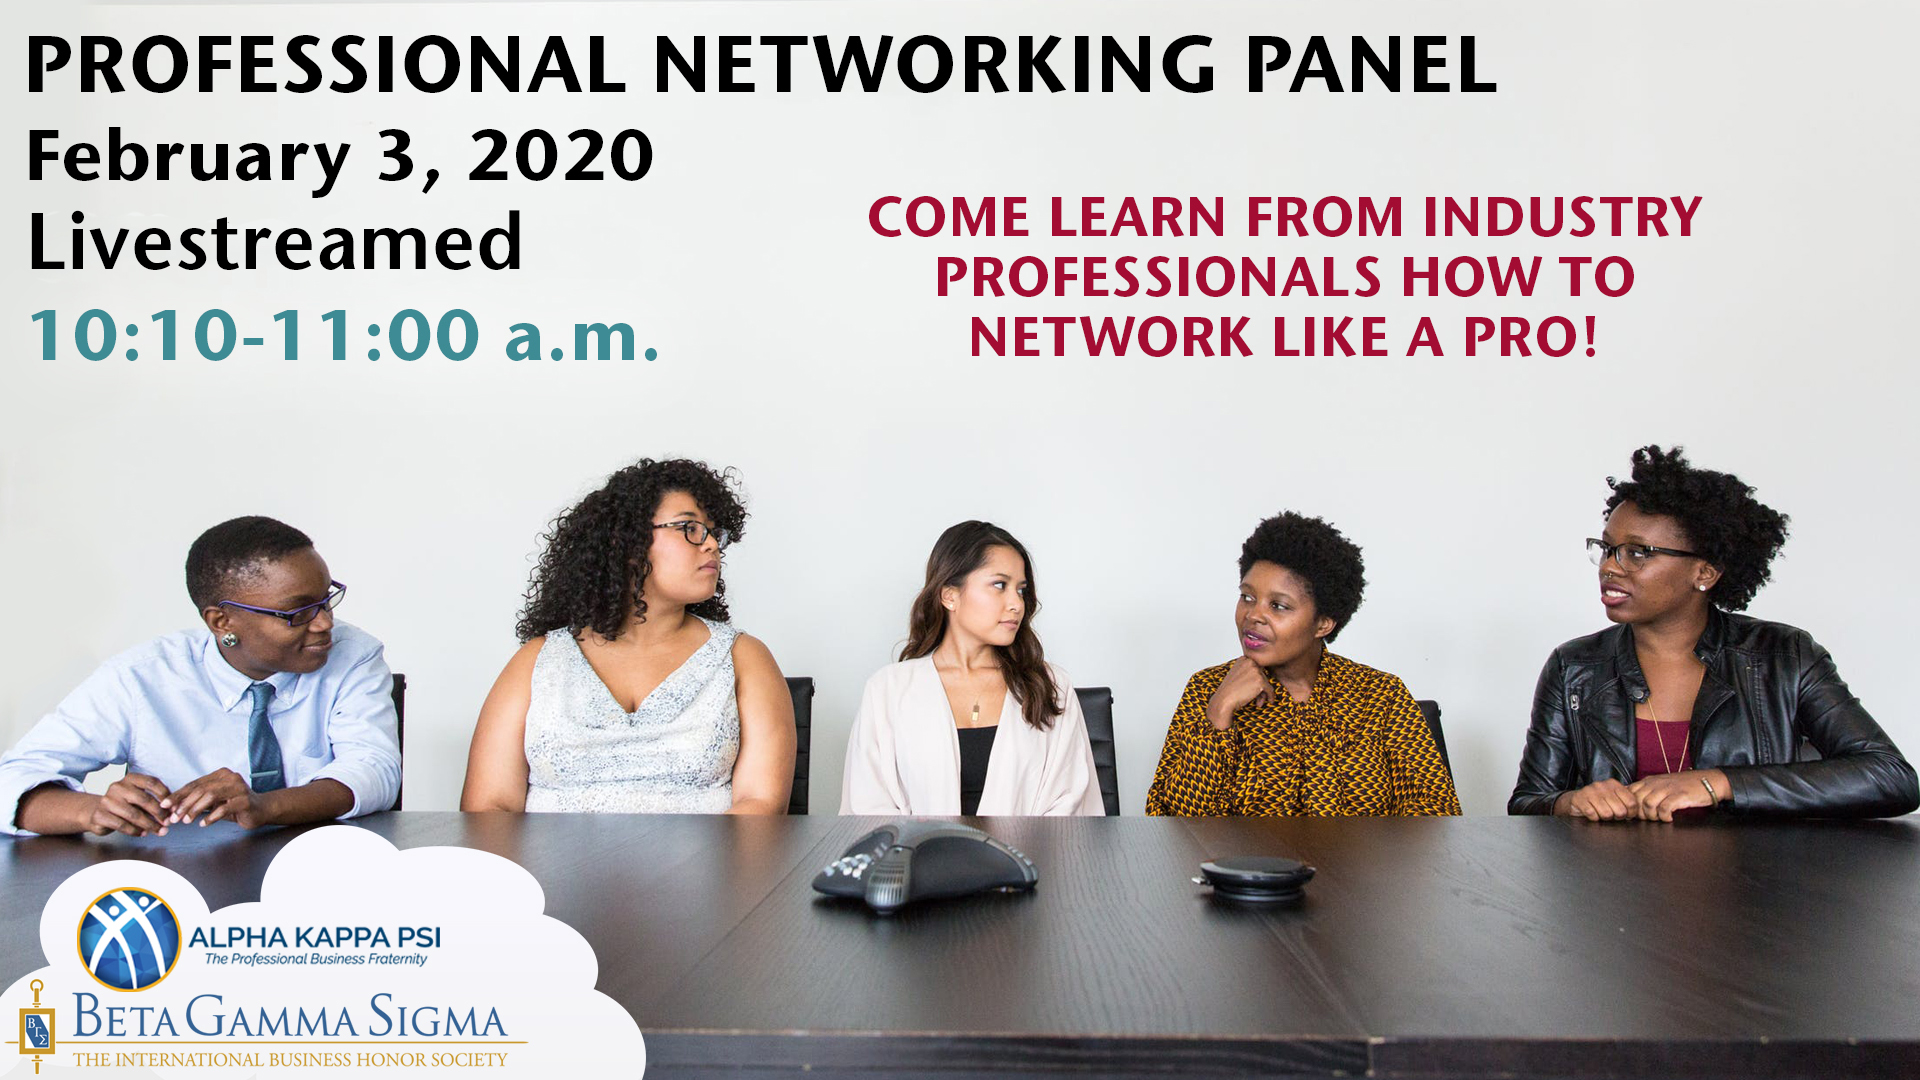 Graphic: Professional Networking Panel. Diverse group sits behind conference table.